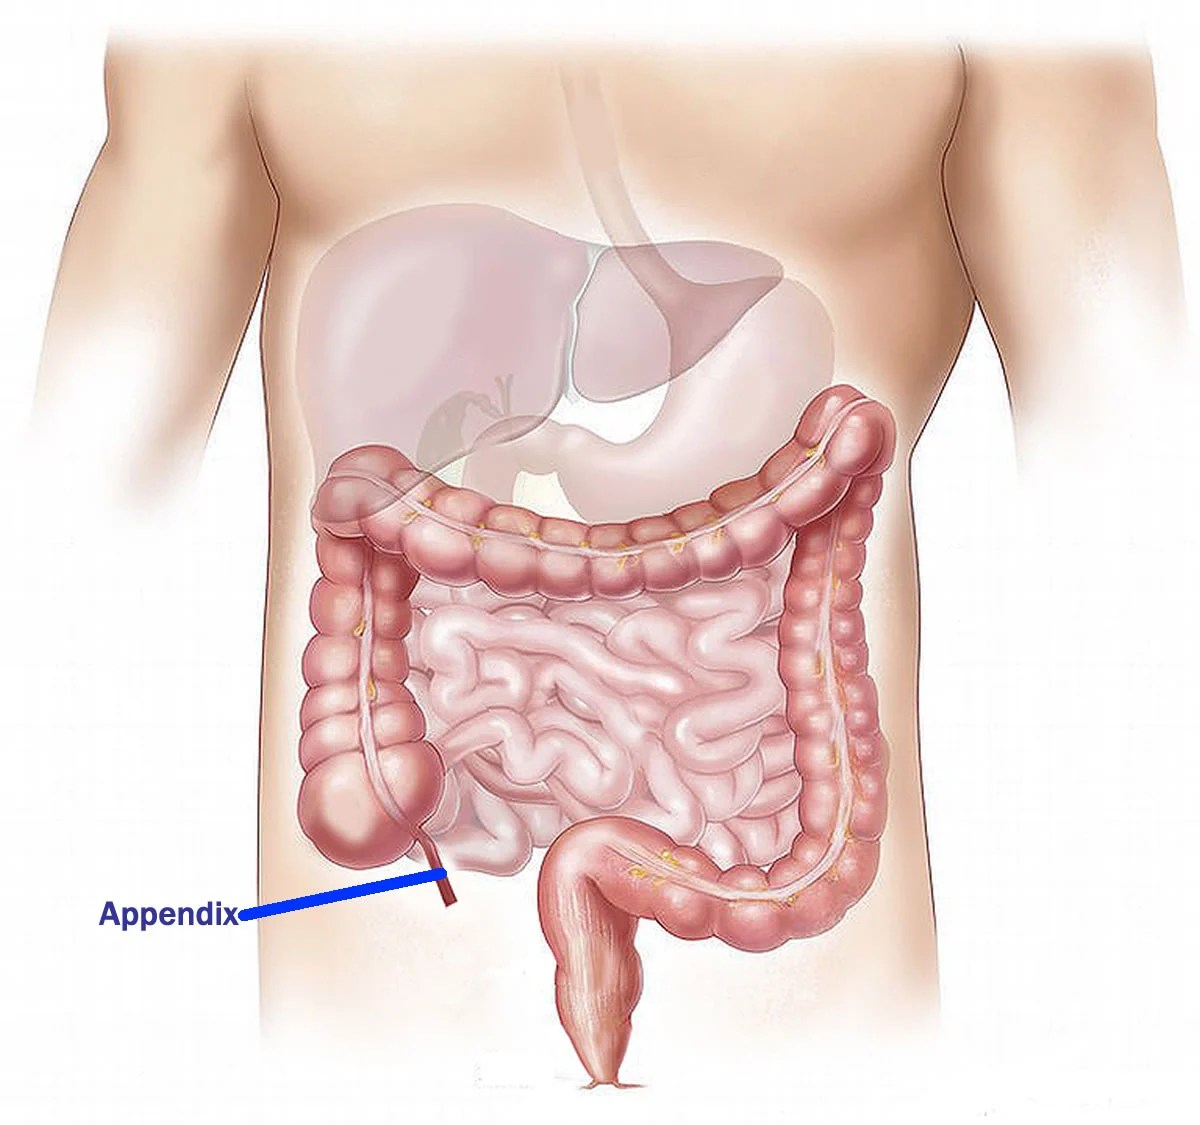 This is a diagram of the intestinal tract with the appendix labeled